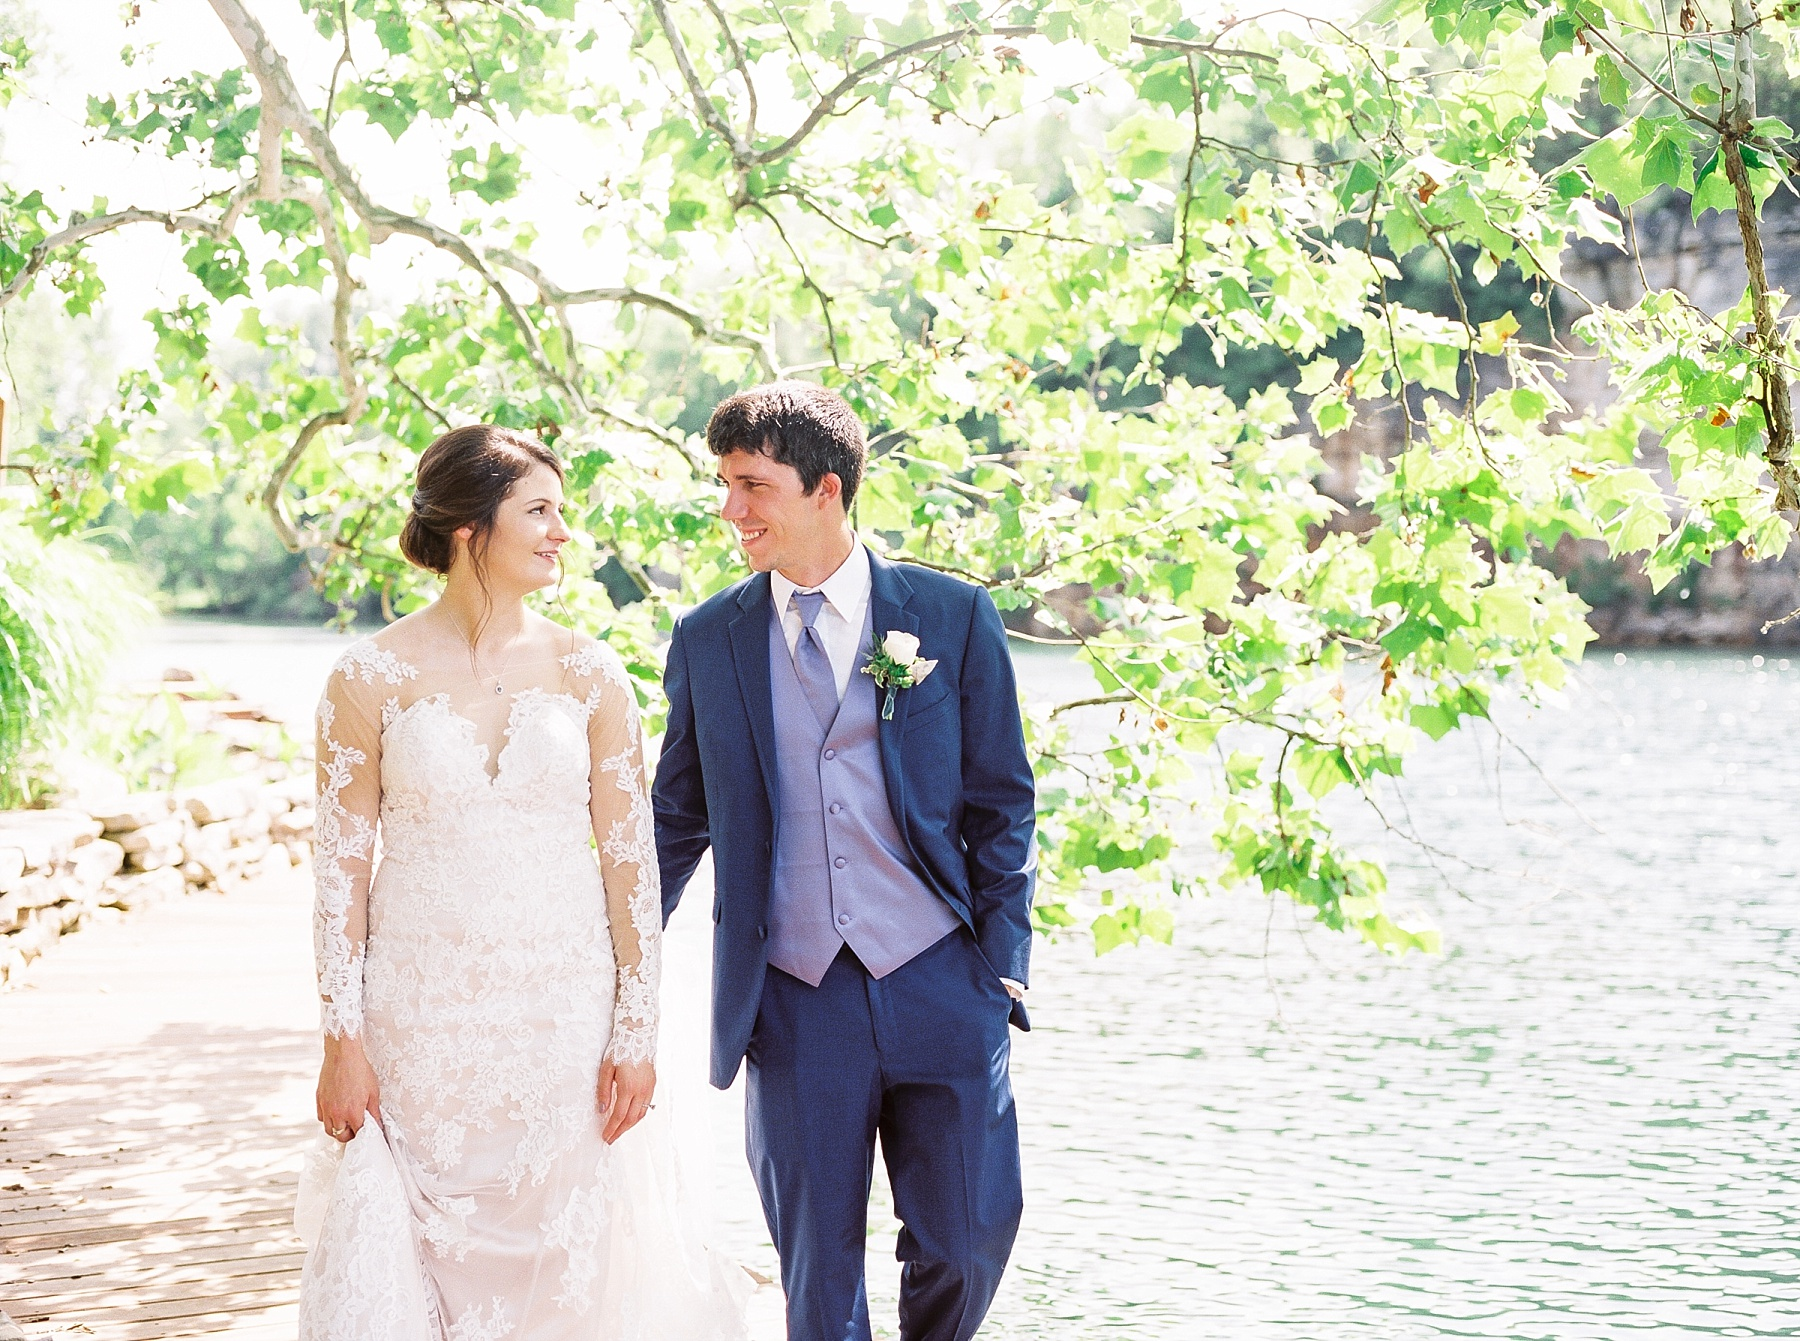 Intimate Mountain Hues Inspired Summer Wedding at Wildcliff Weddings and Events by Kelsi Kliethermes Photography Best Missouri and Maui Wedding Photographer_0019.jpg